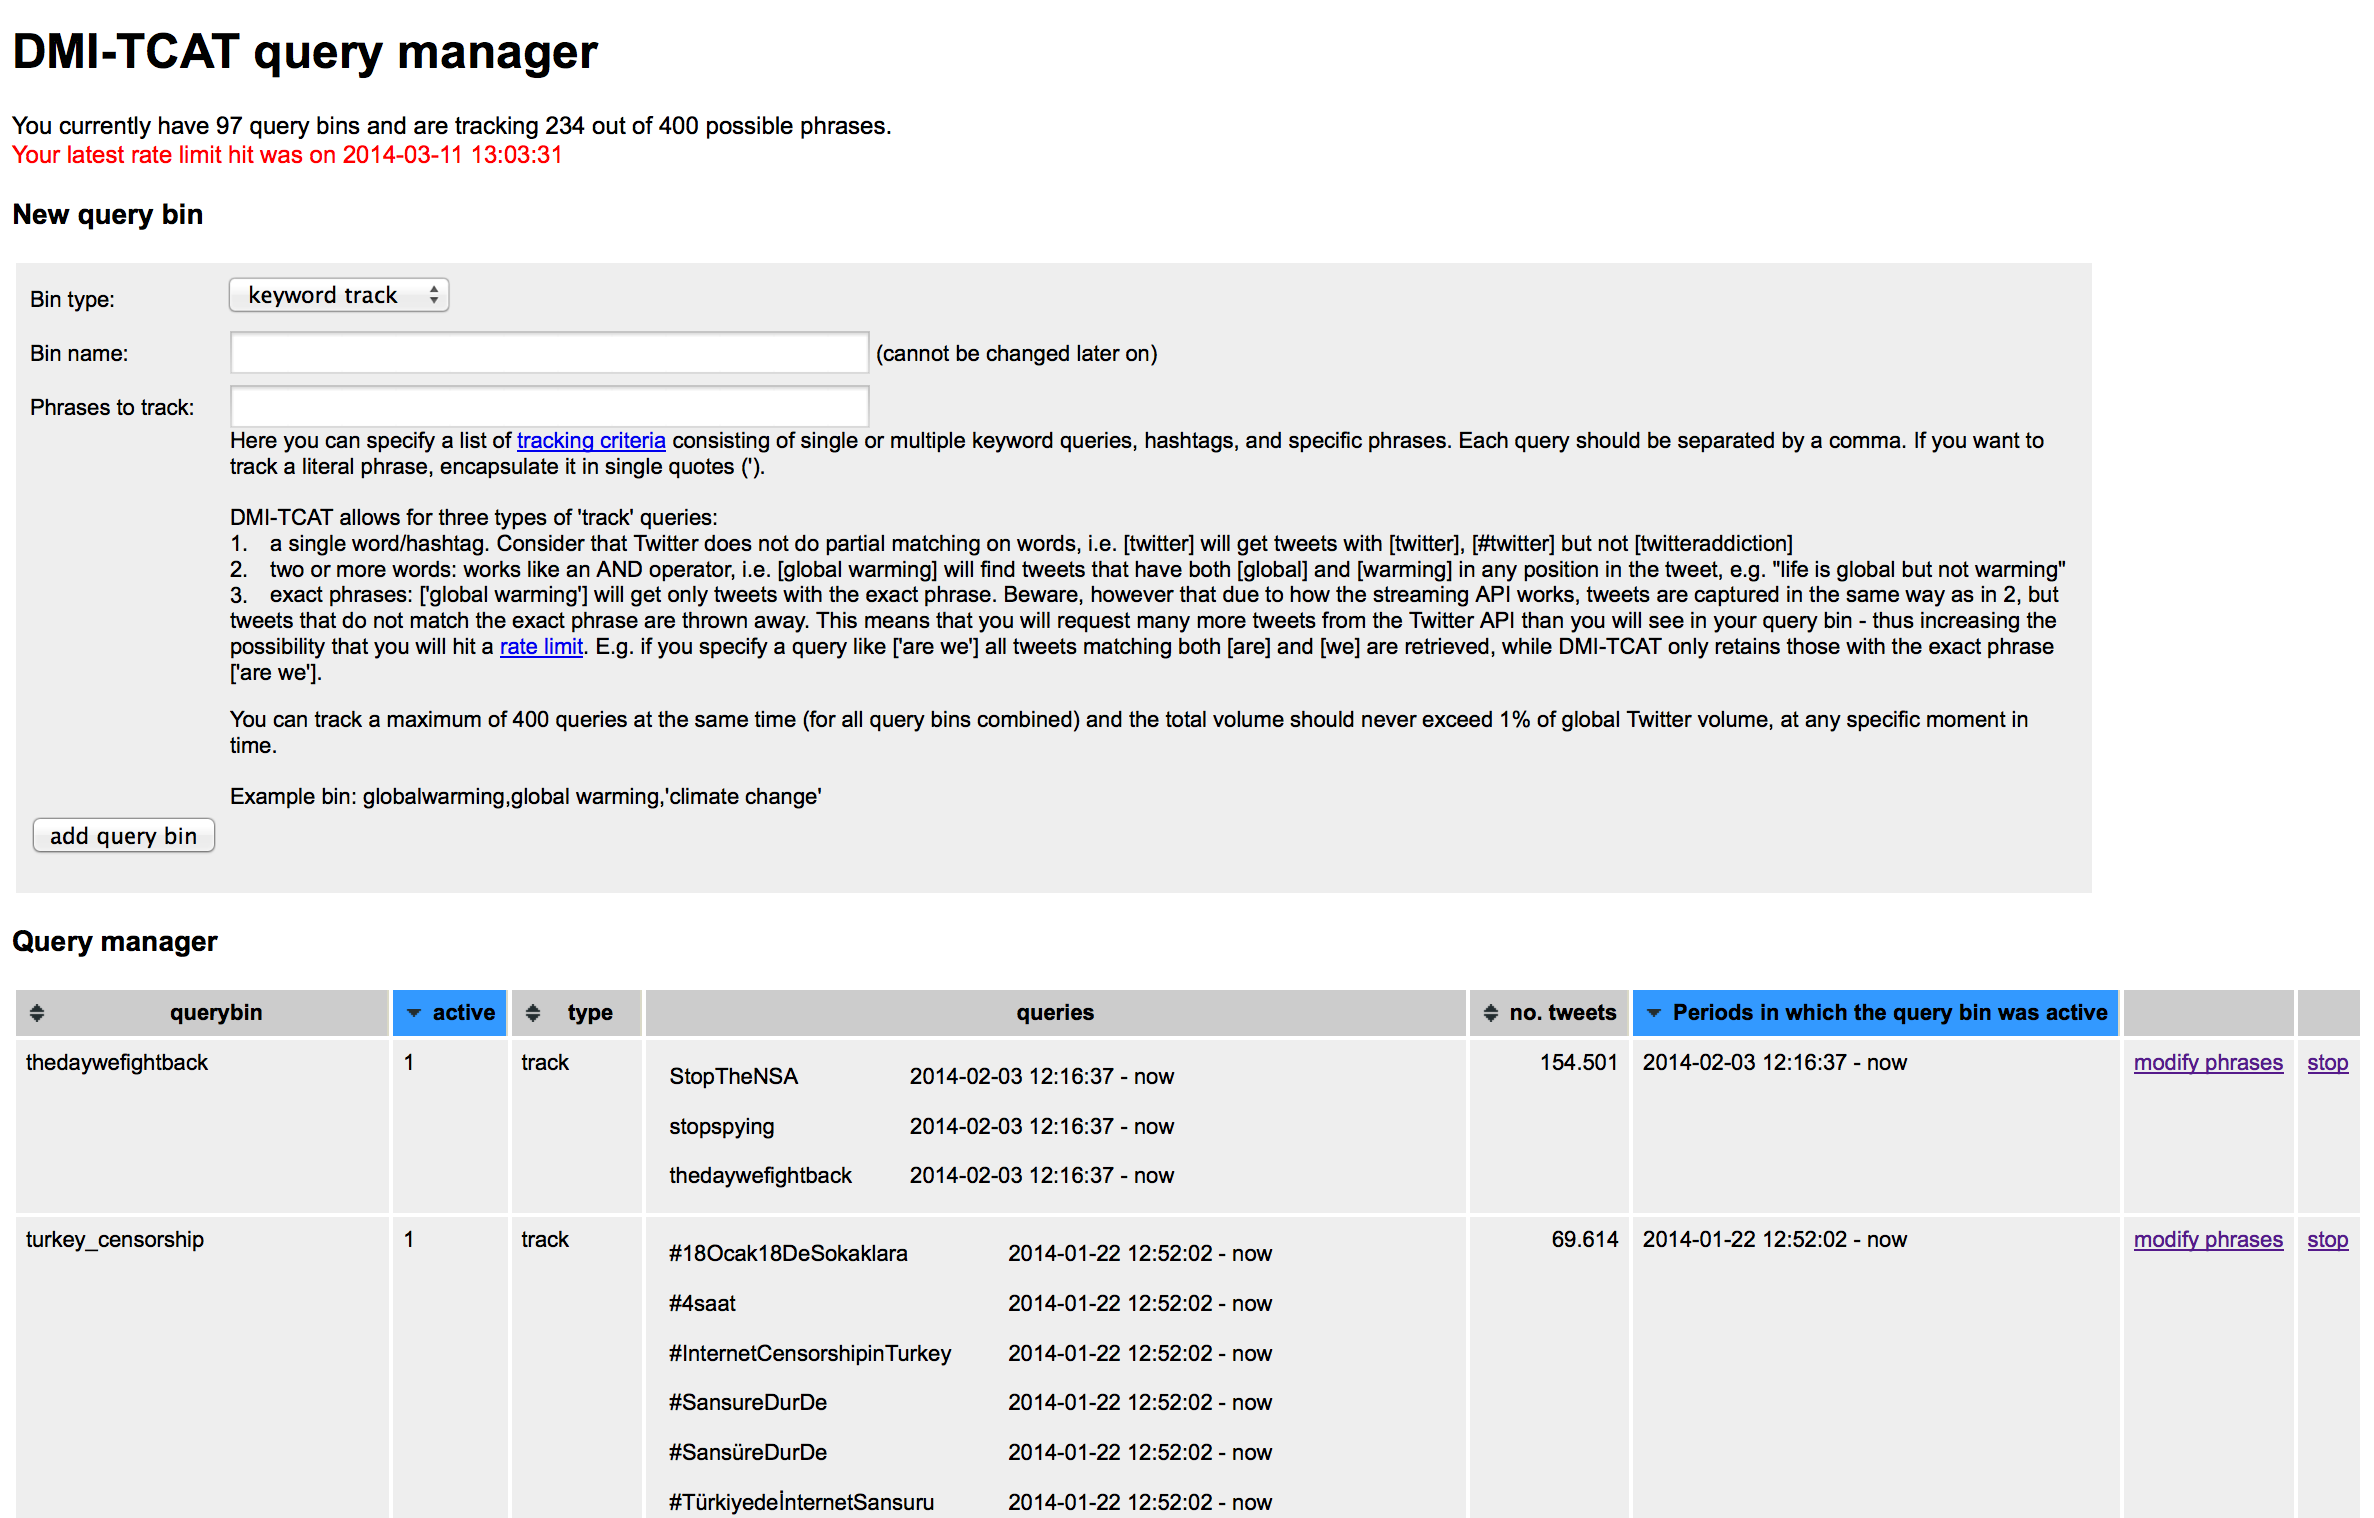 Query manager interface of DMI-TCAT